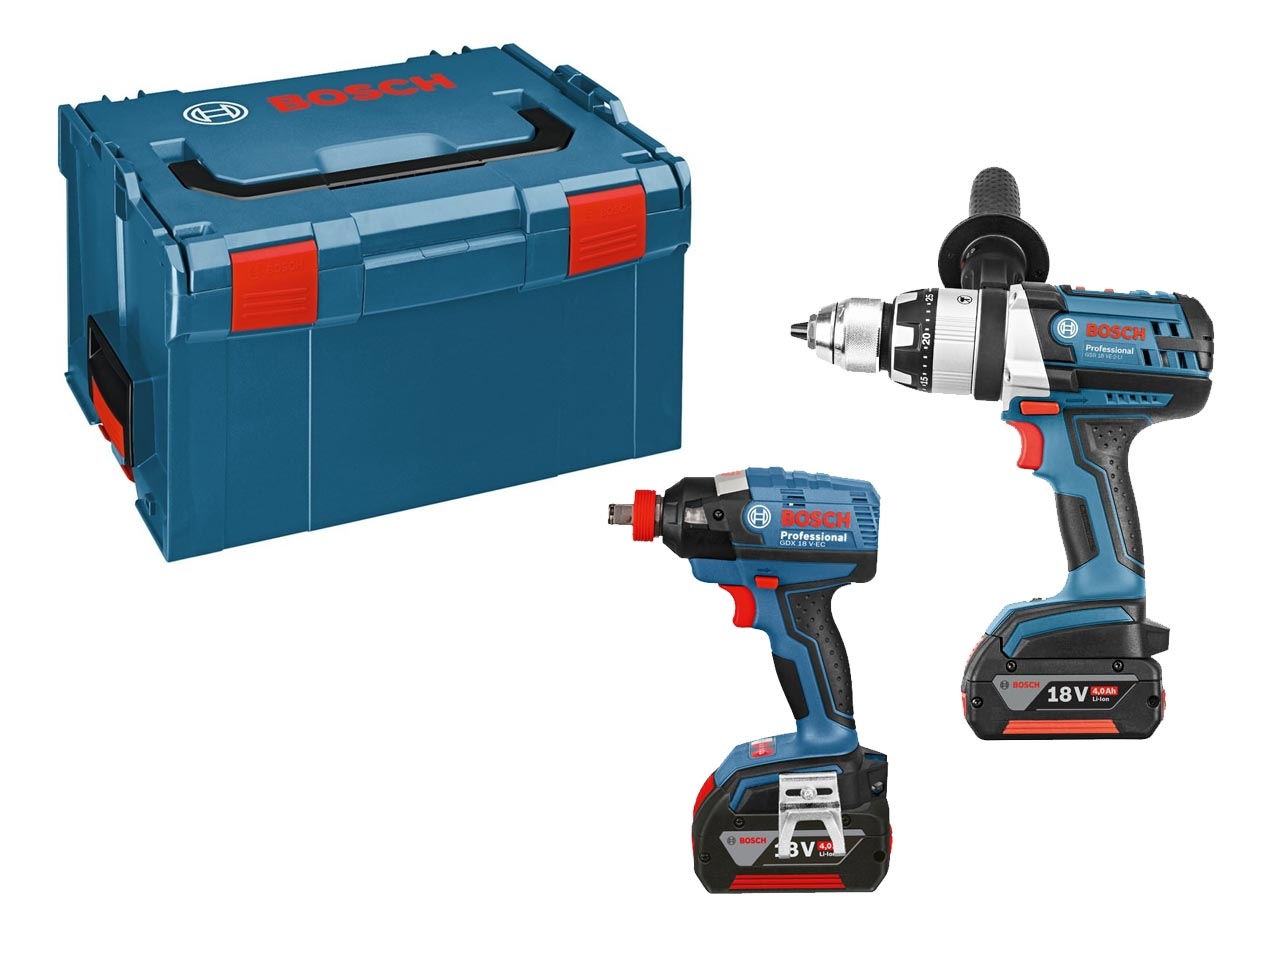 bosch 0615990gm5 18v combi drill and impact drill kit 2 x. Black Bedroom Furniture Sets. Home Design Ideas